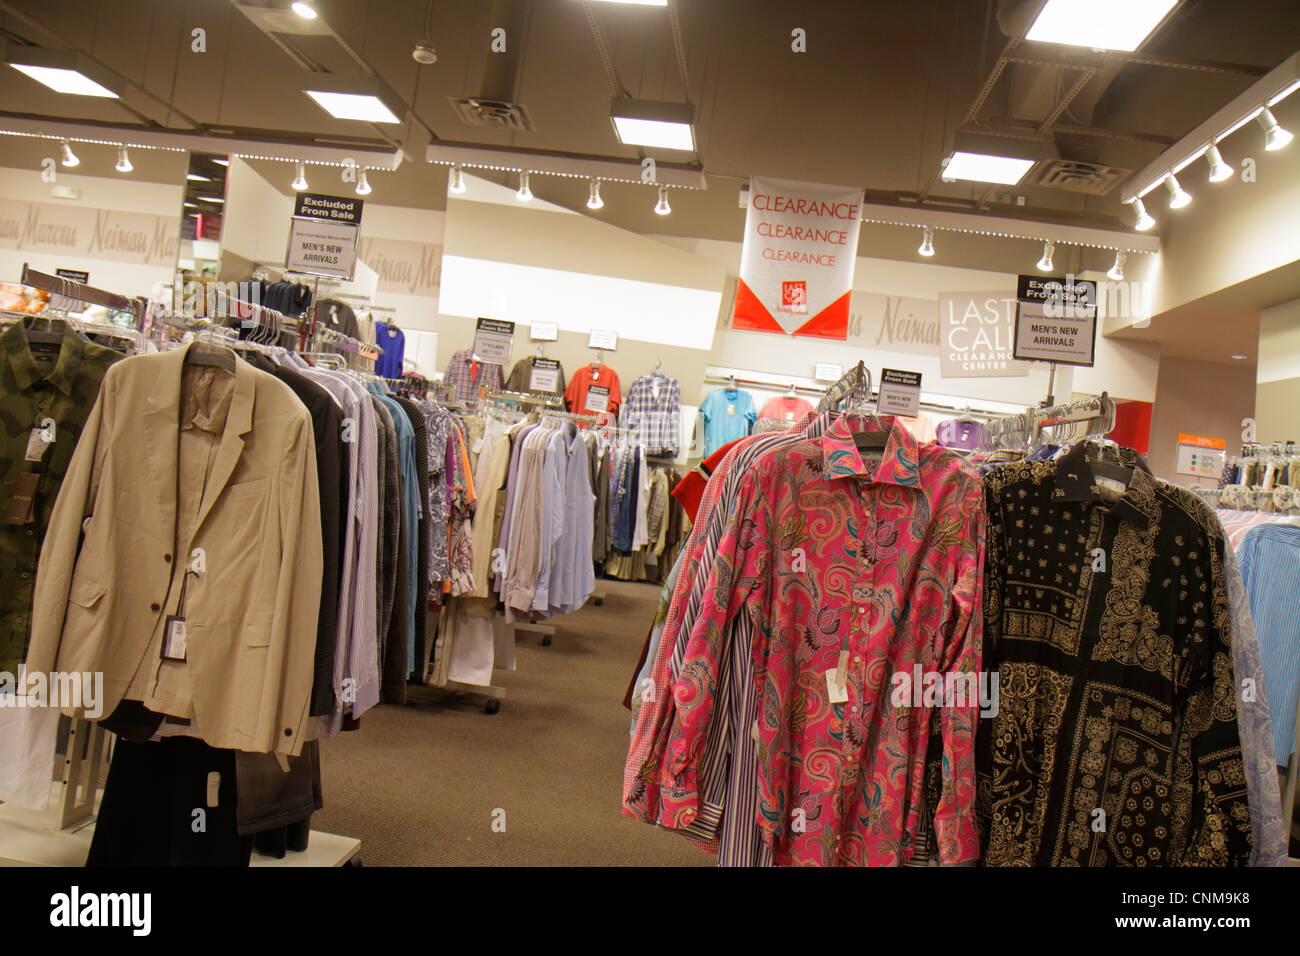 Miami Florida Sweetwater Dolphin Mall shopping Neiman Marcus Last Call Clearance Center centre clothing sale discount - Stock Image